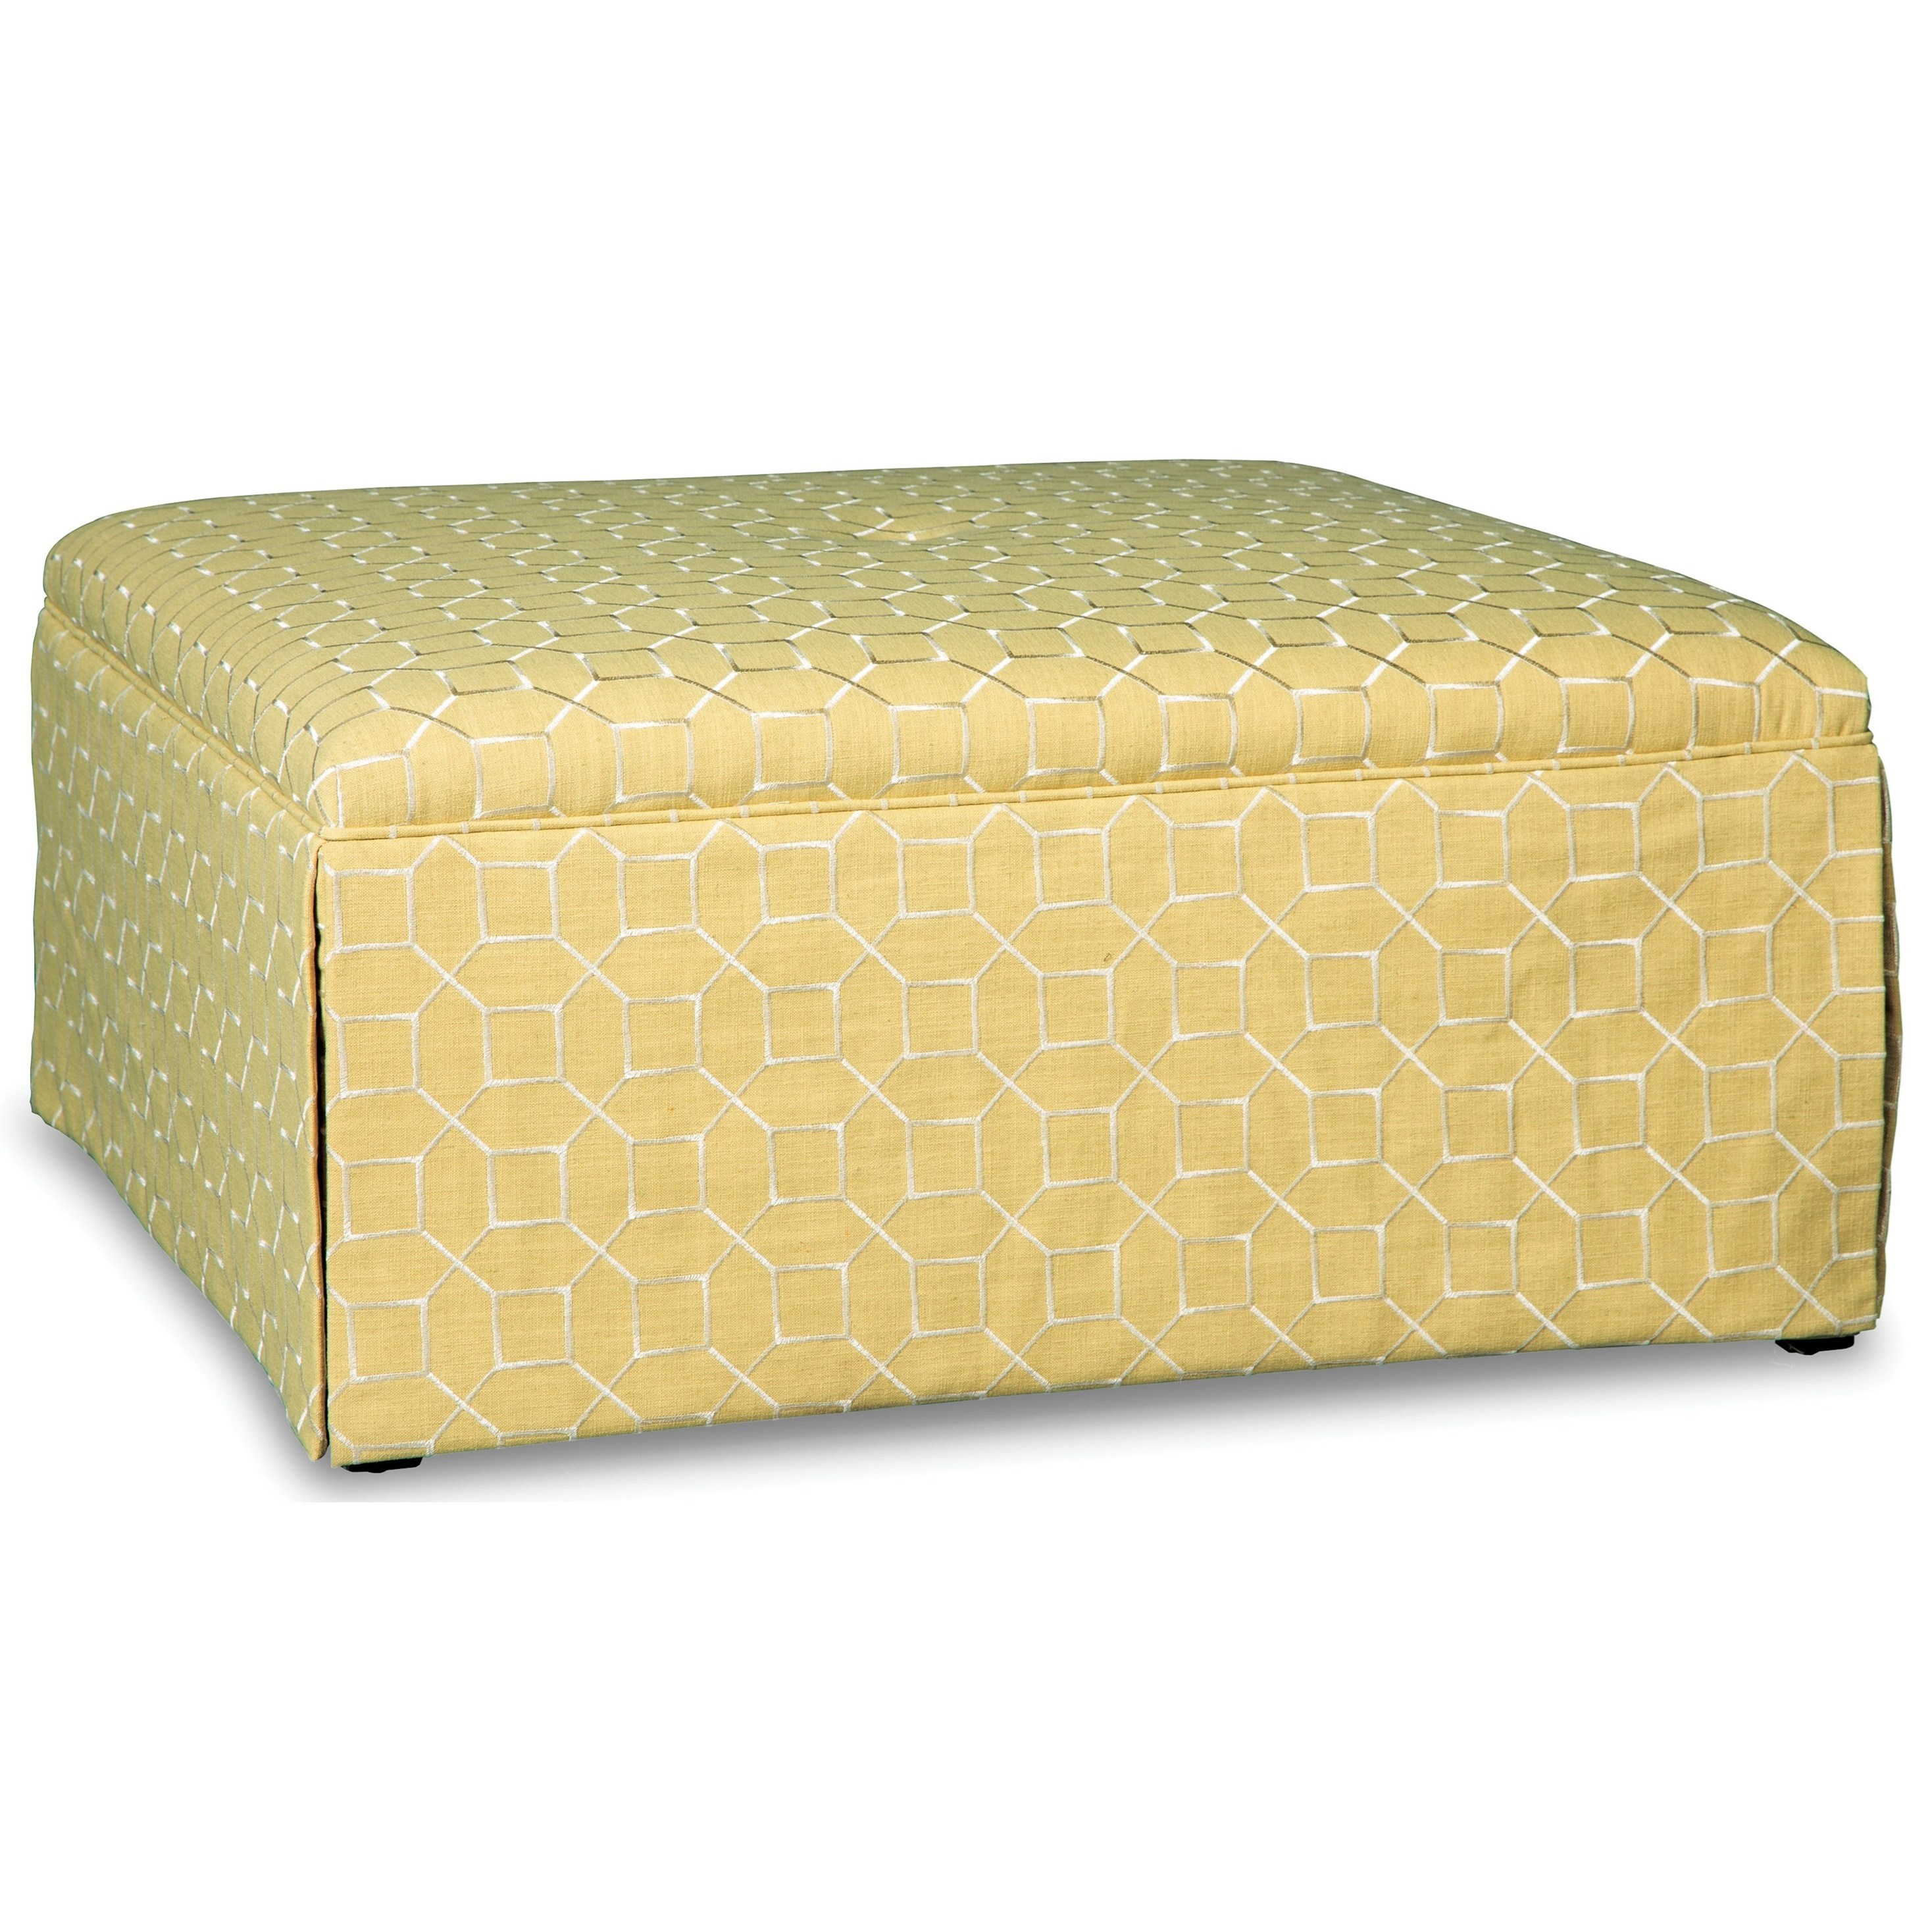 Paula Deen Upholstered Accents Square Cocktail Ottoman by Paula Deen by Craftmaster at Suburban Furniture